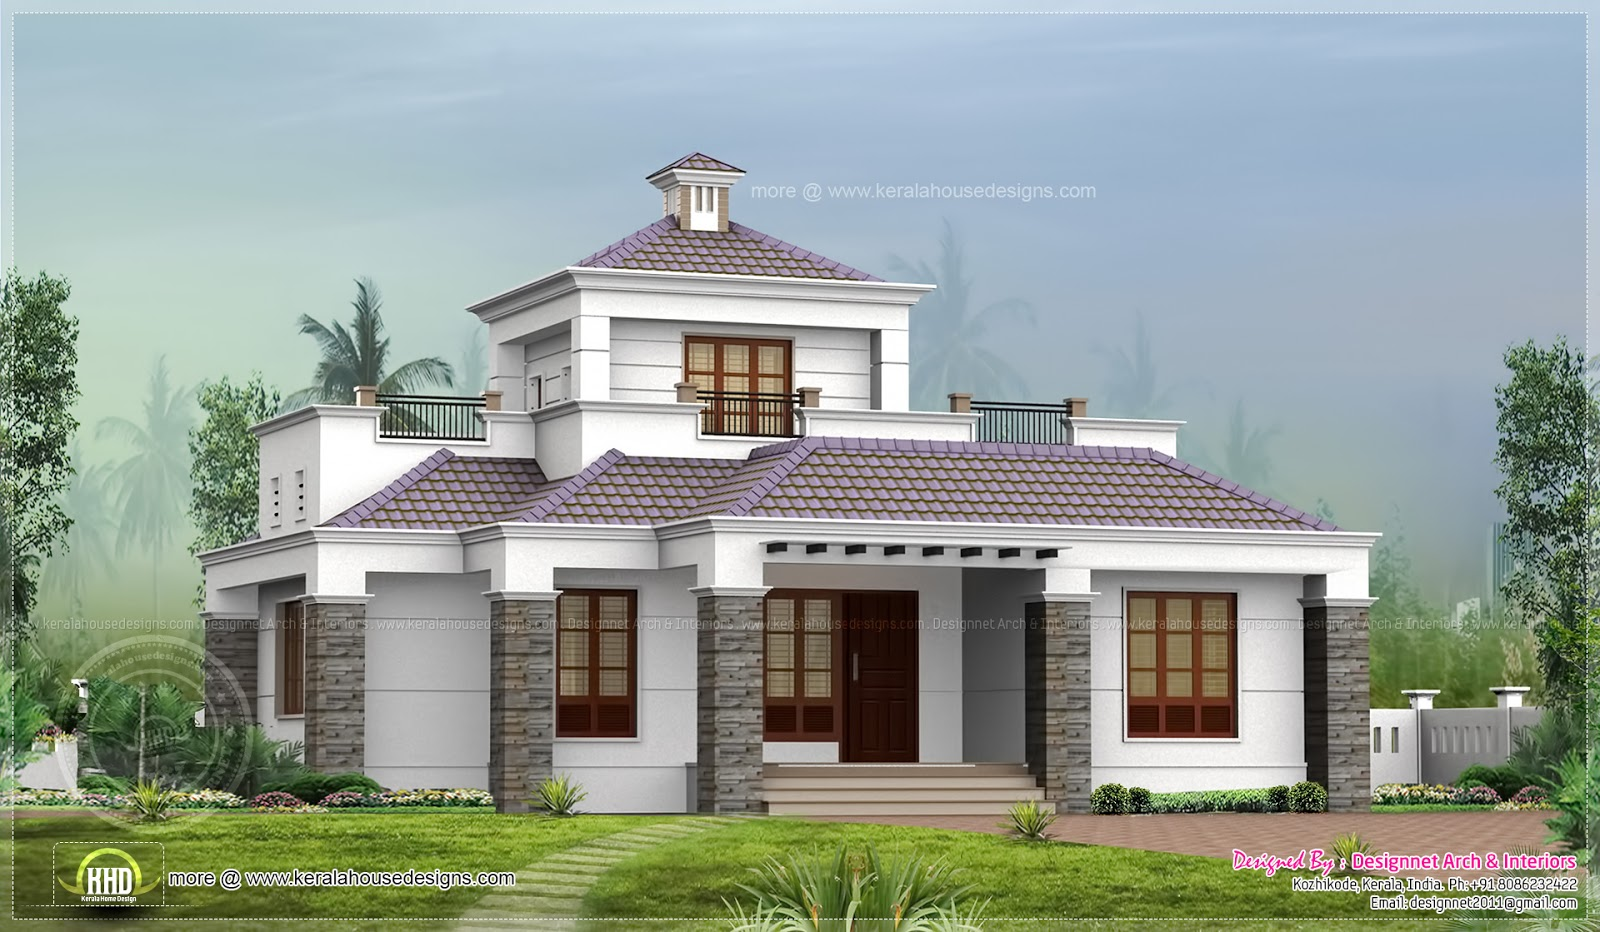 Single floor home with stair room in 1500 sq ft kerala for Single floor house